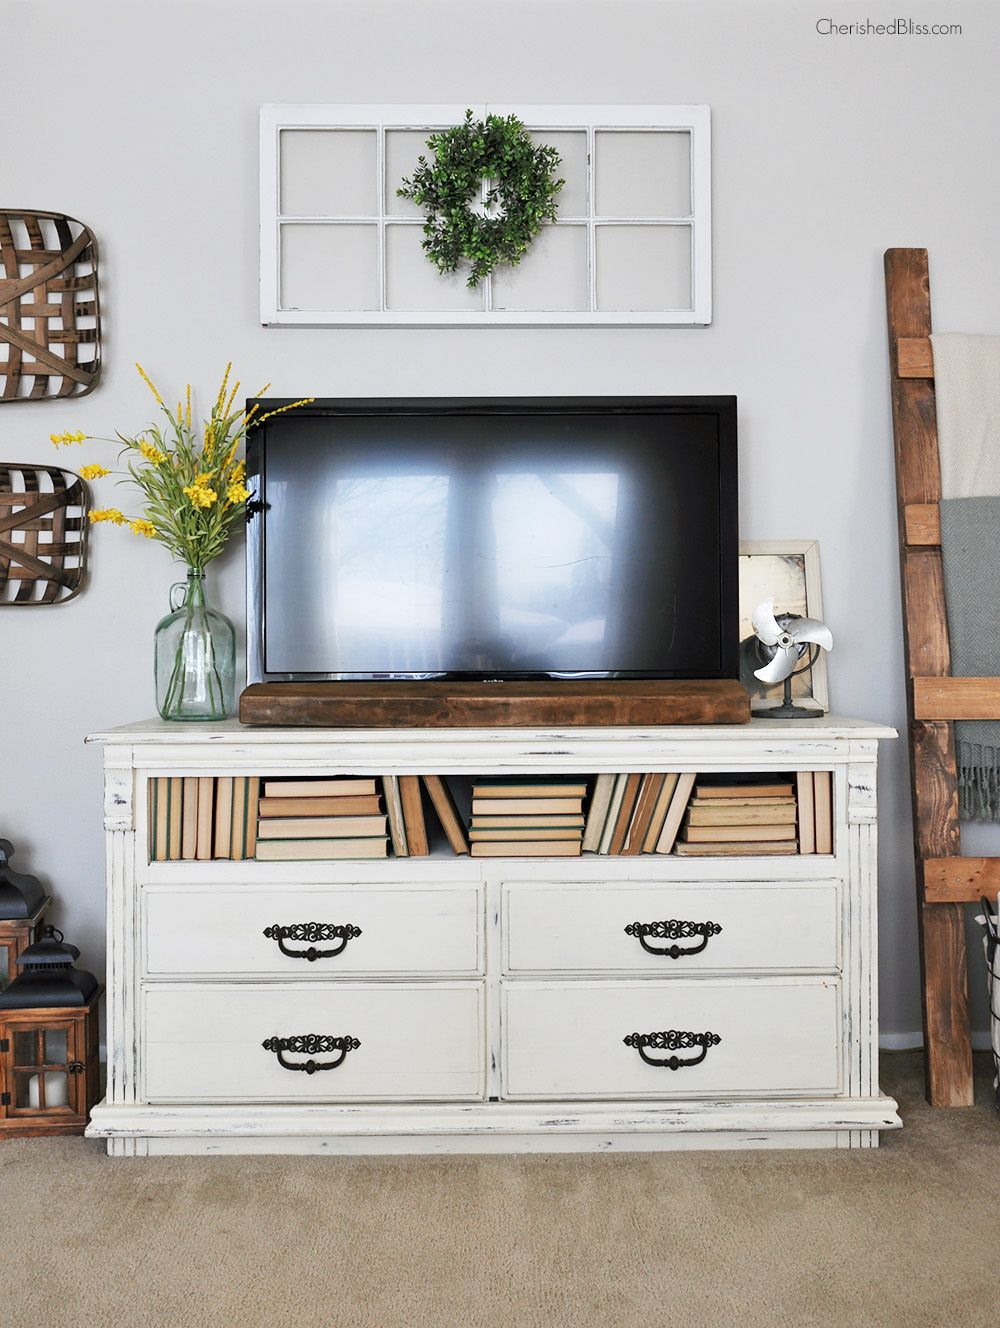 How to Decorate Around a TV | Living rooms, Decorating and TVs